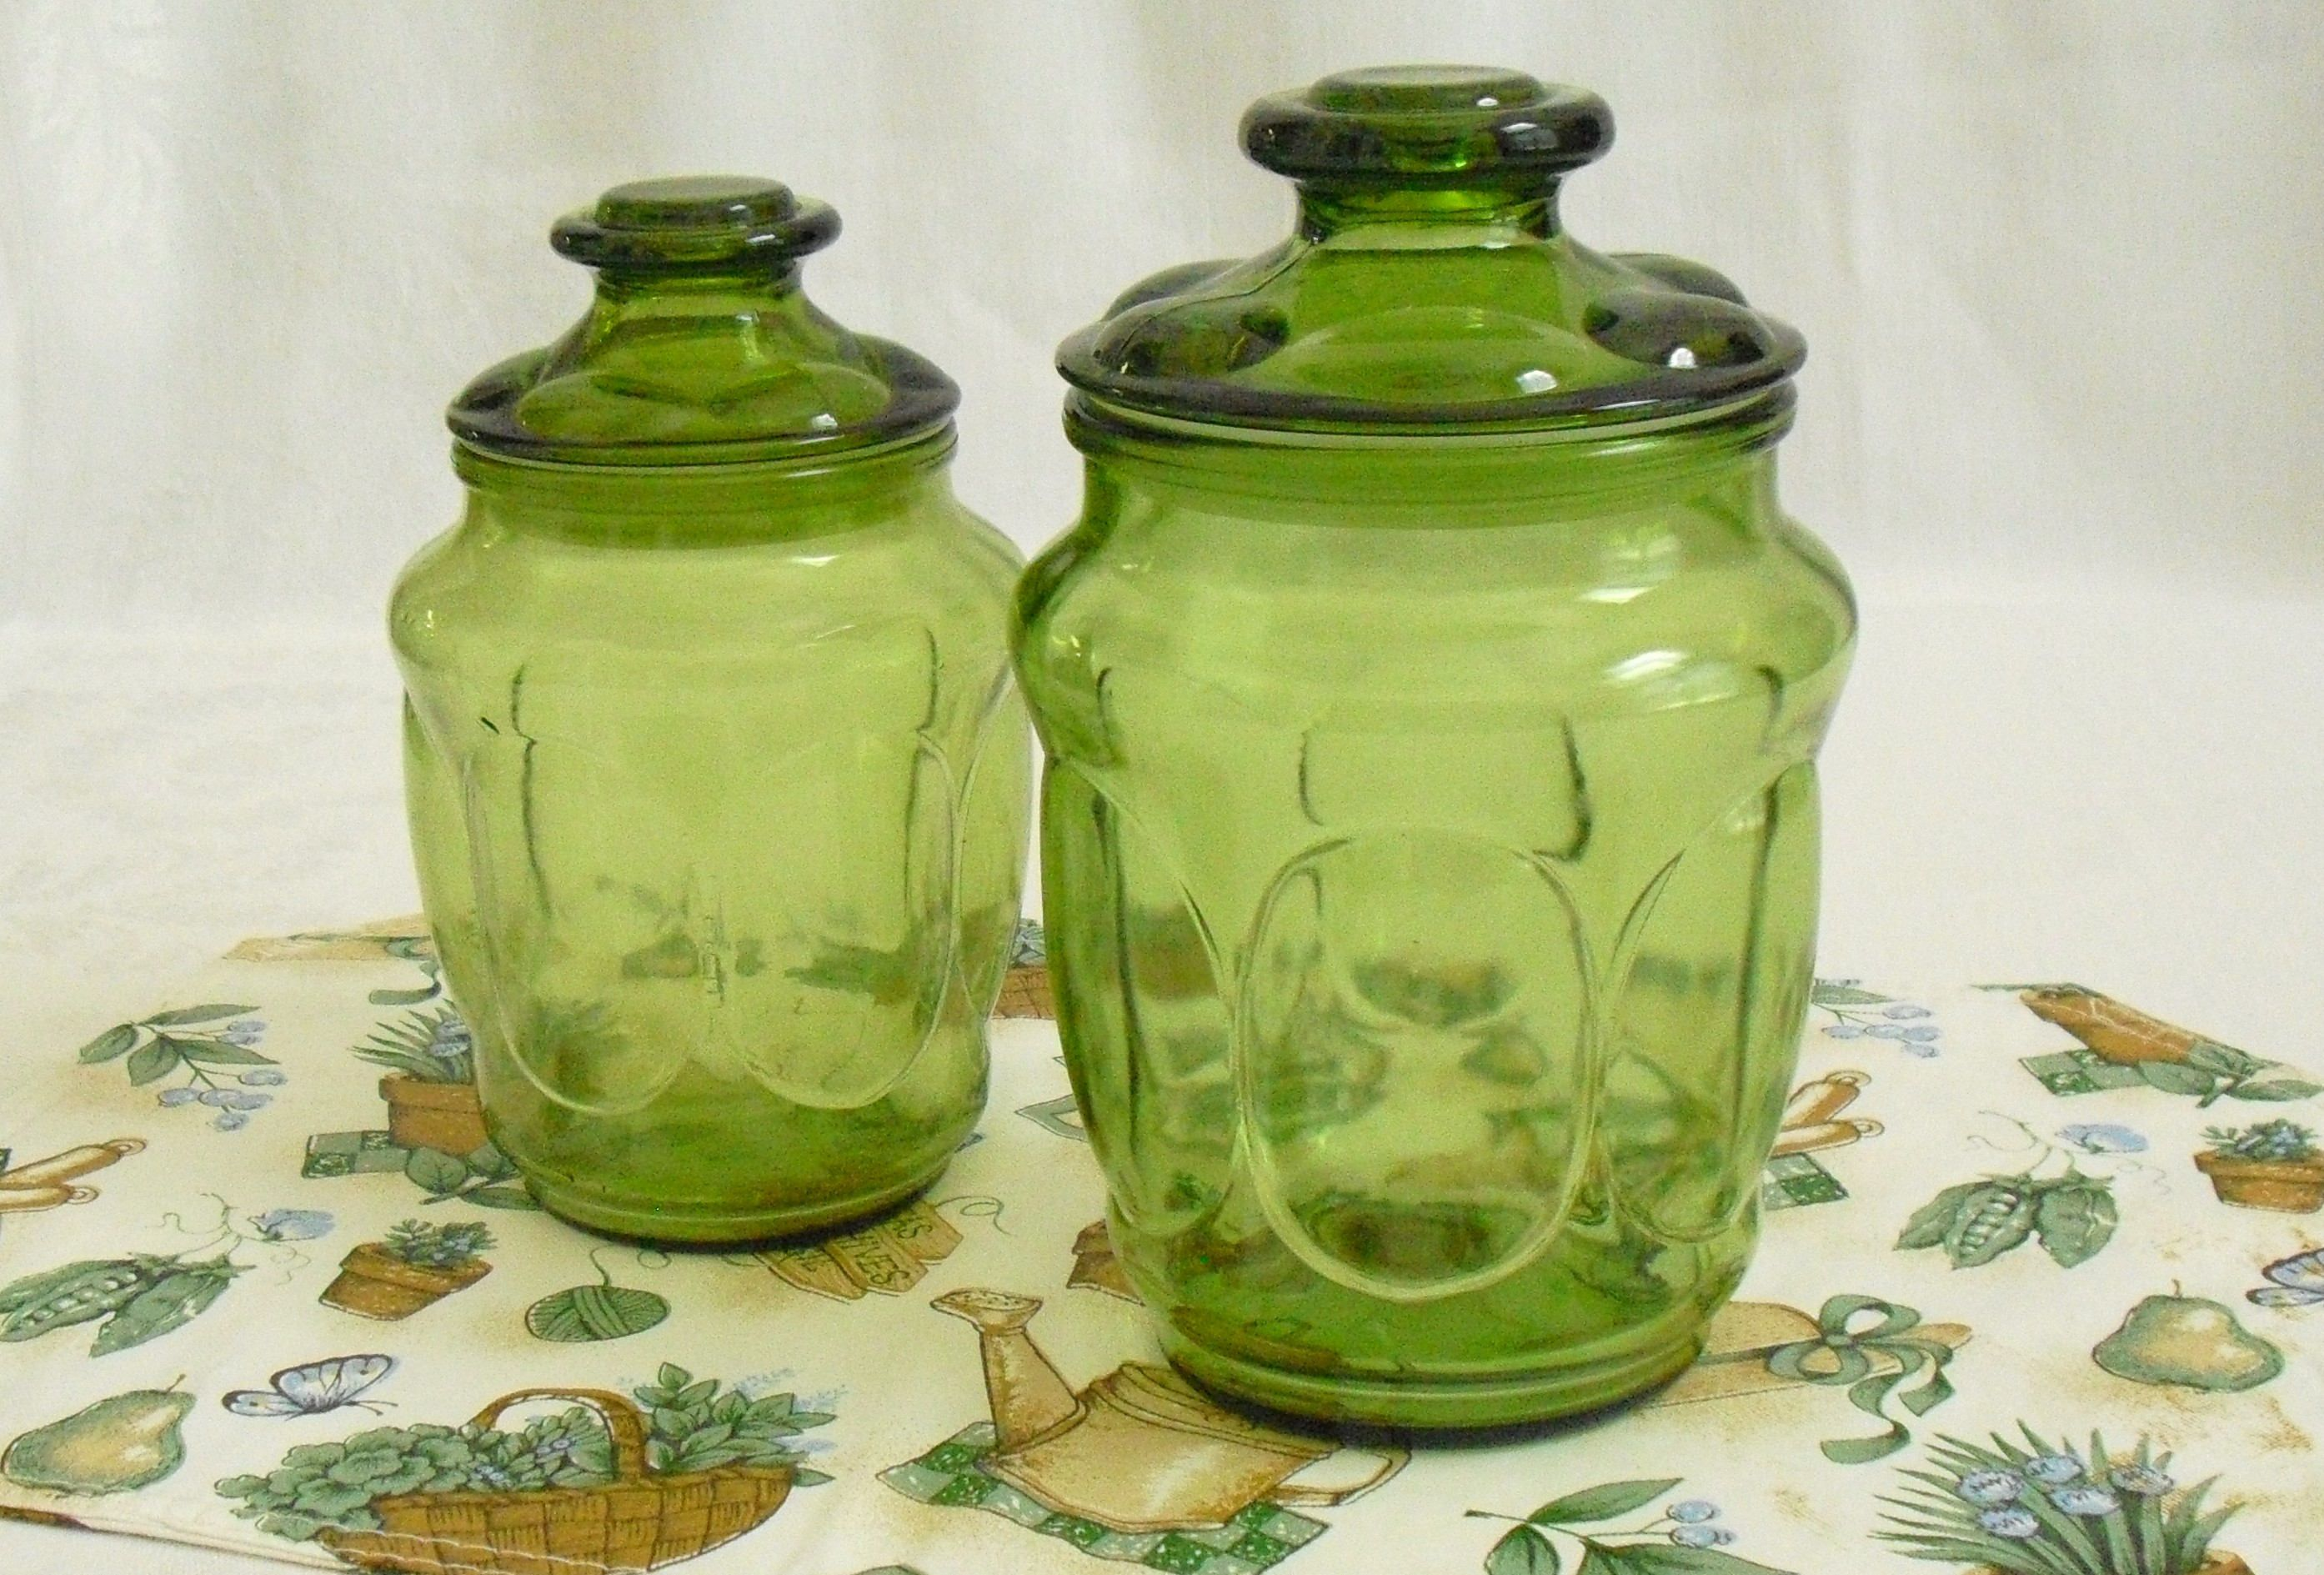 Superieur Set Of 2 Vintage L E Smith Green Glass Canister Jars, Matching Lid,  Apothecary,